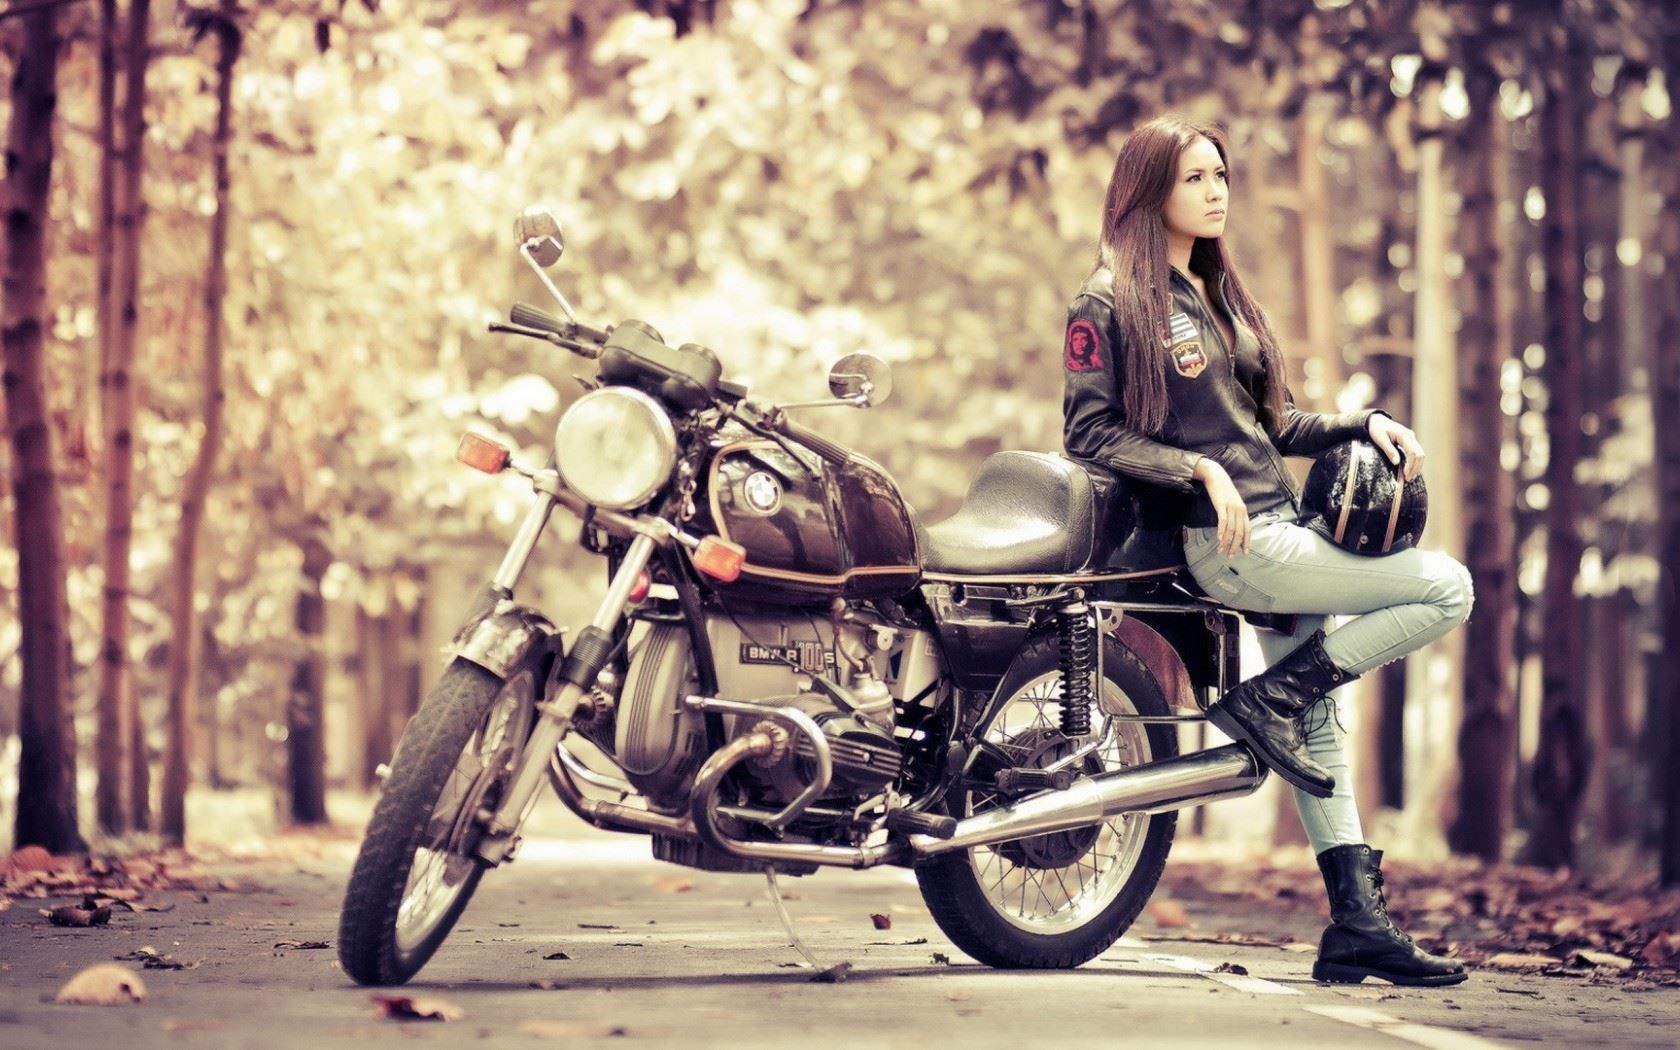 Biker Girl Wallpaper Motorcycle Girl Biker Girl Motorcycle Women